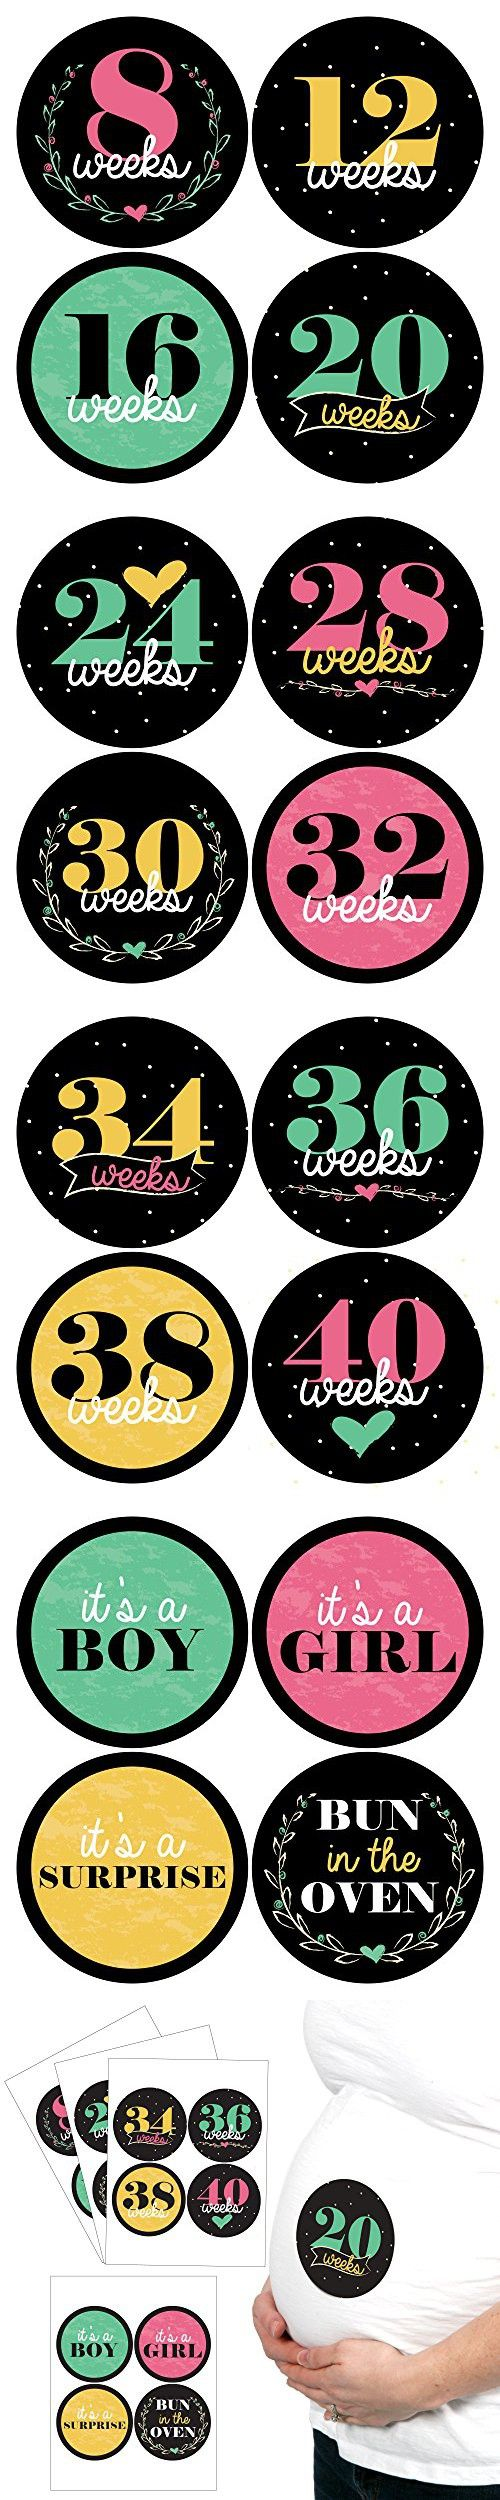 Vibrant Floral - Weekly Pregnancy Belly Stickers Set - 16